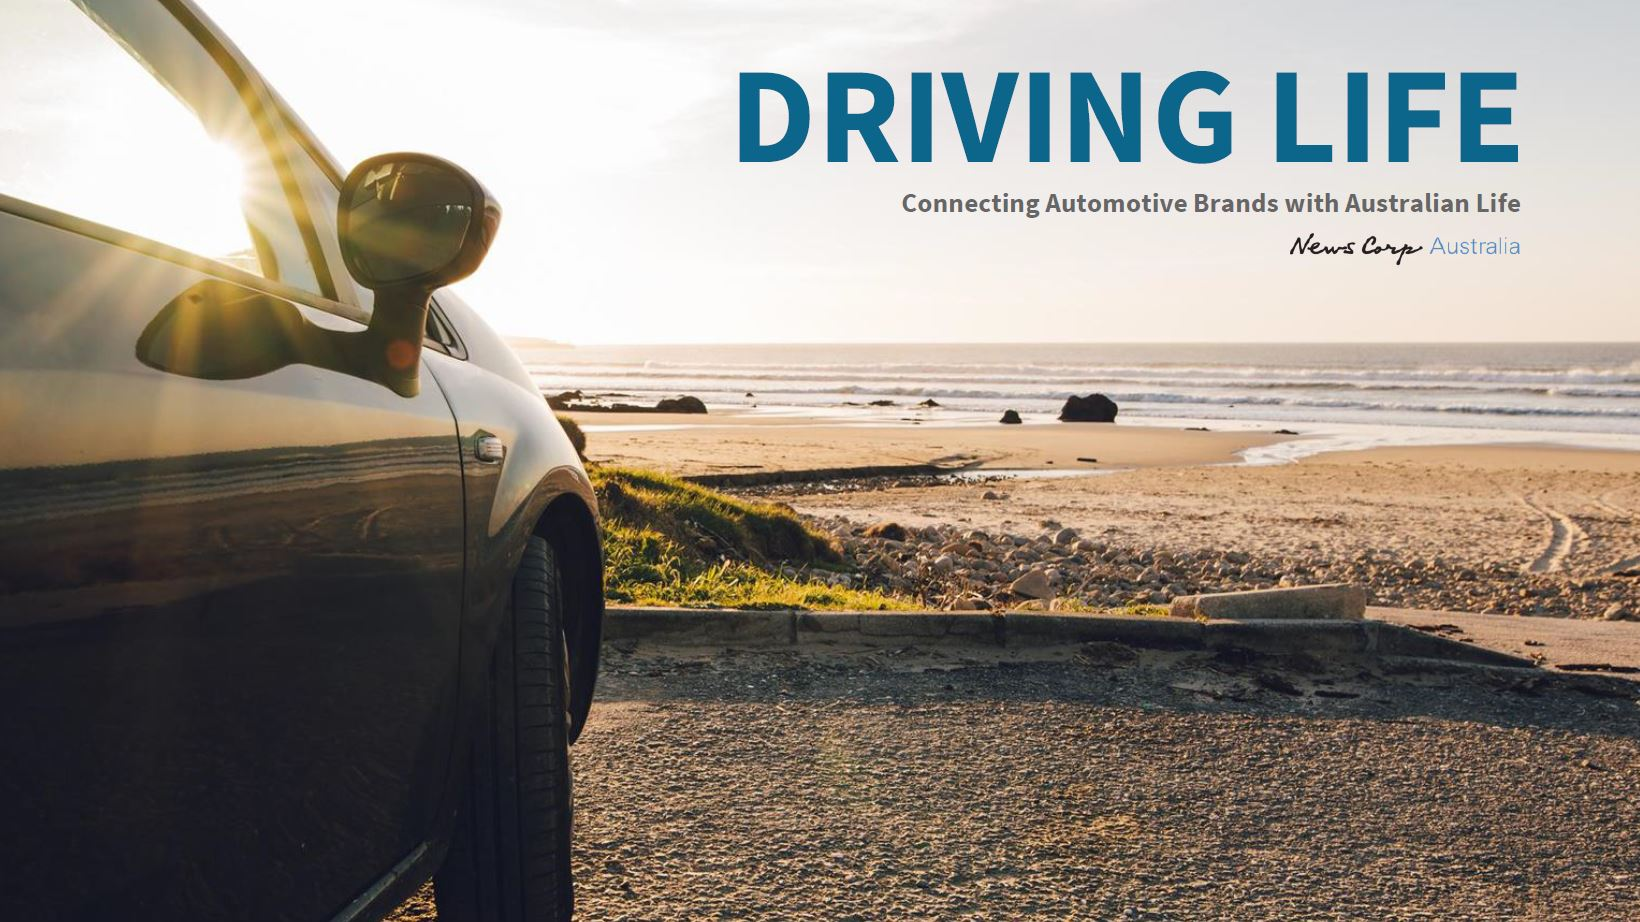 Driving Life: Connecting Automotive Brands with Australian Life